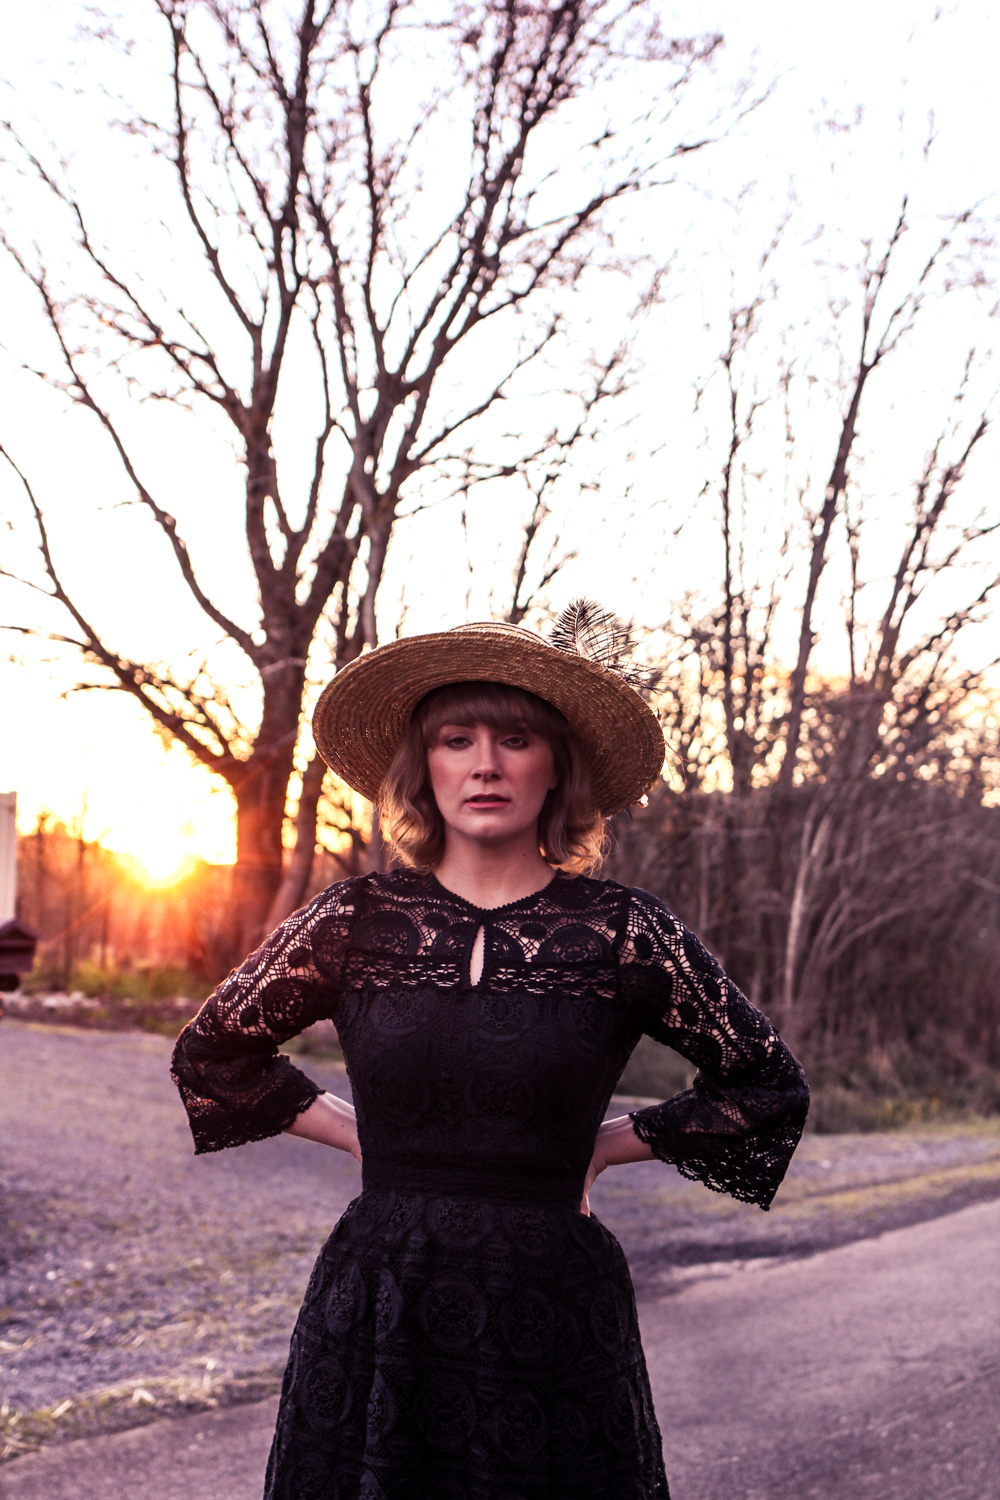 Liana of @findingfemme in black lace dress and winter boater